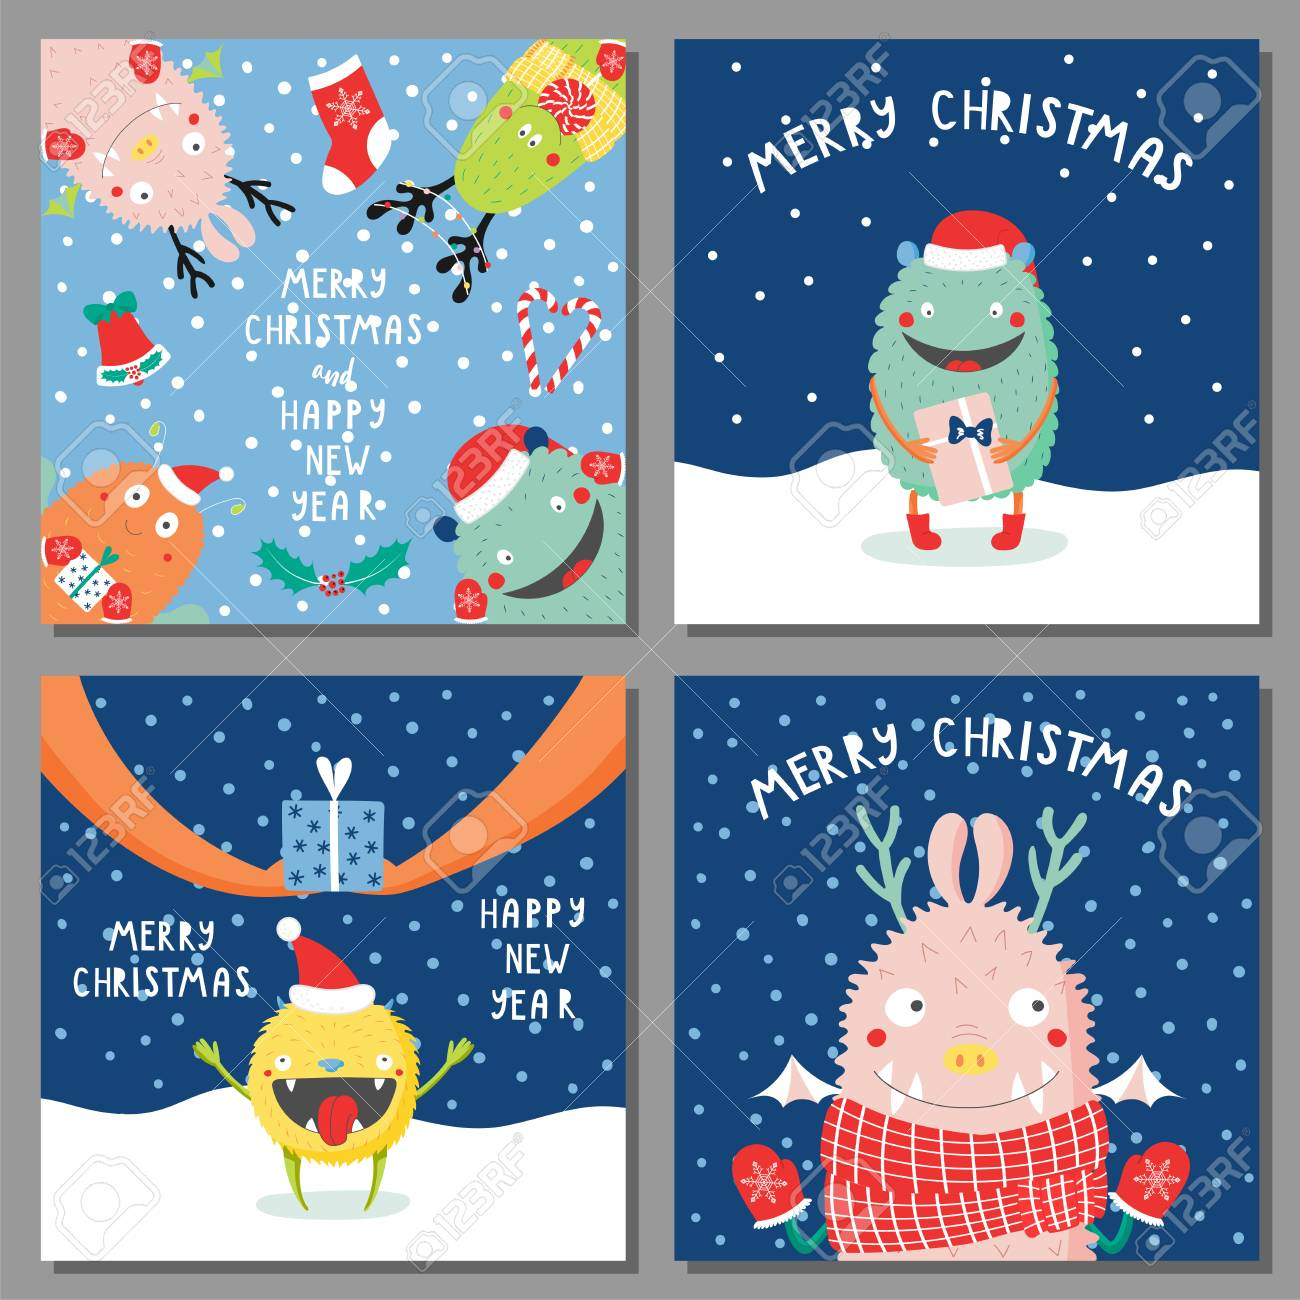 set of hand drawn christmas greeting cards templates with cute